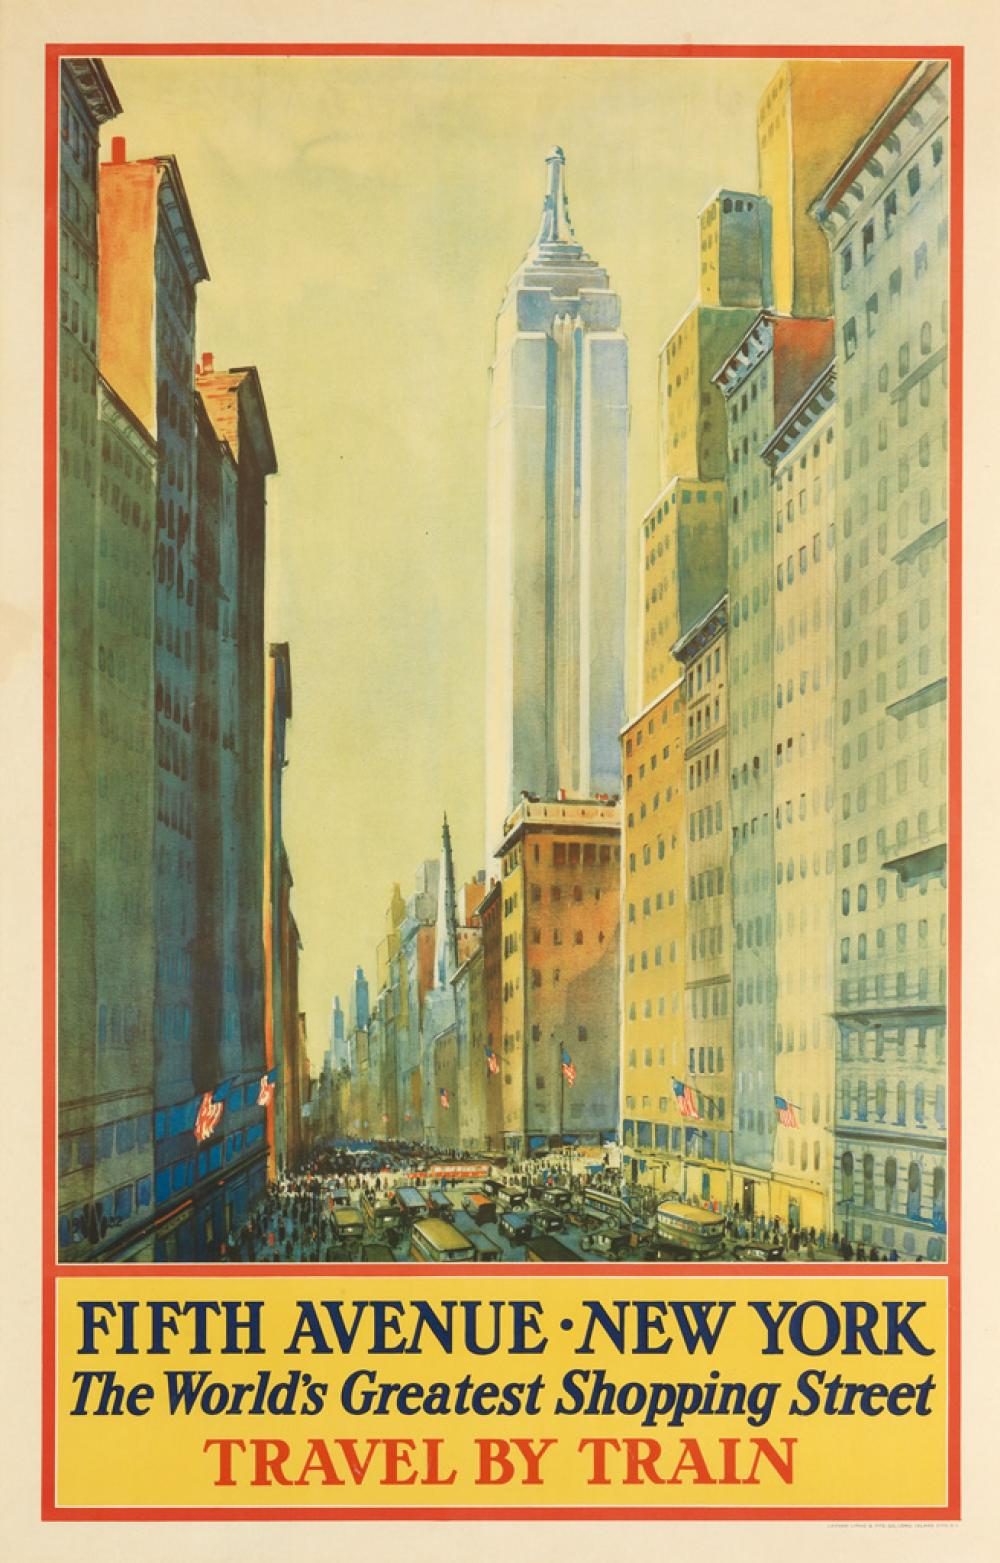 FREDERIC KIMBALL MIZEN (1888-1965). FIFTH AVENUE • NEW YORK / THE WORLD'S GREATEST SHOPPING STREET. 1932. 39x23 inches, 101x60 cm. Lat